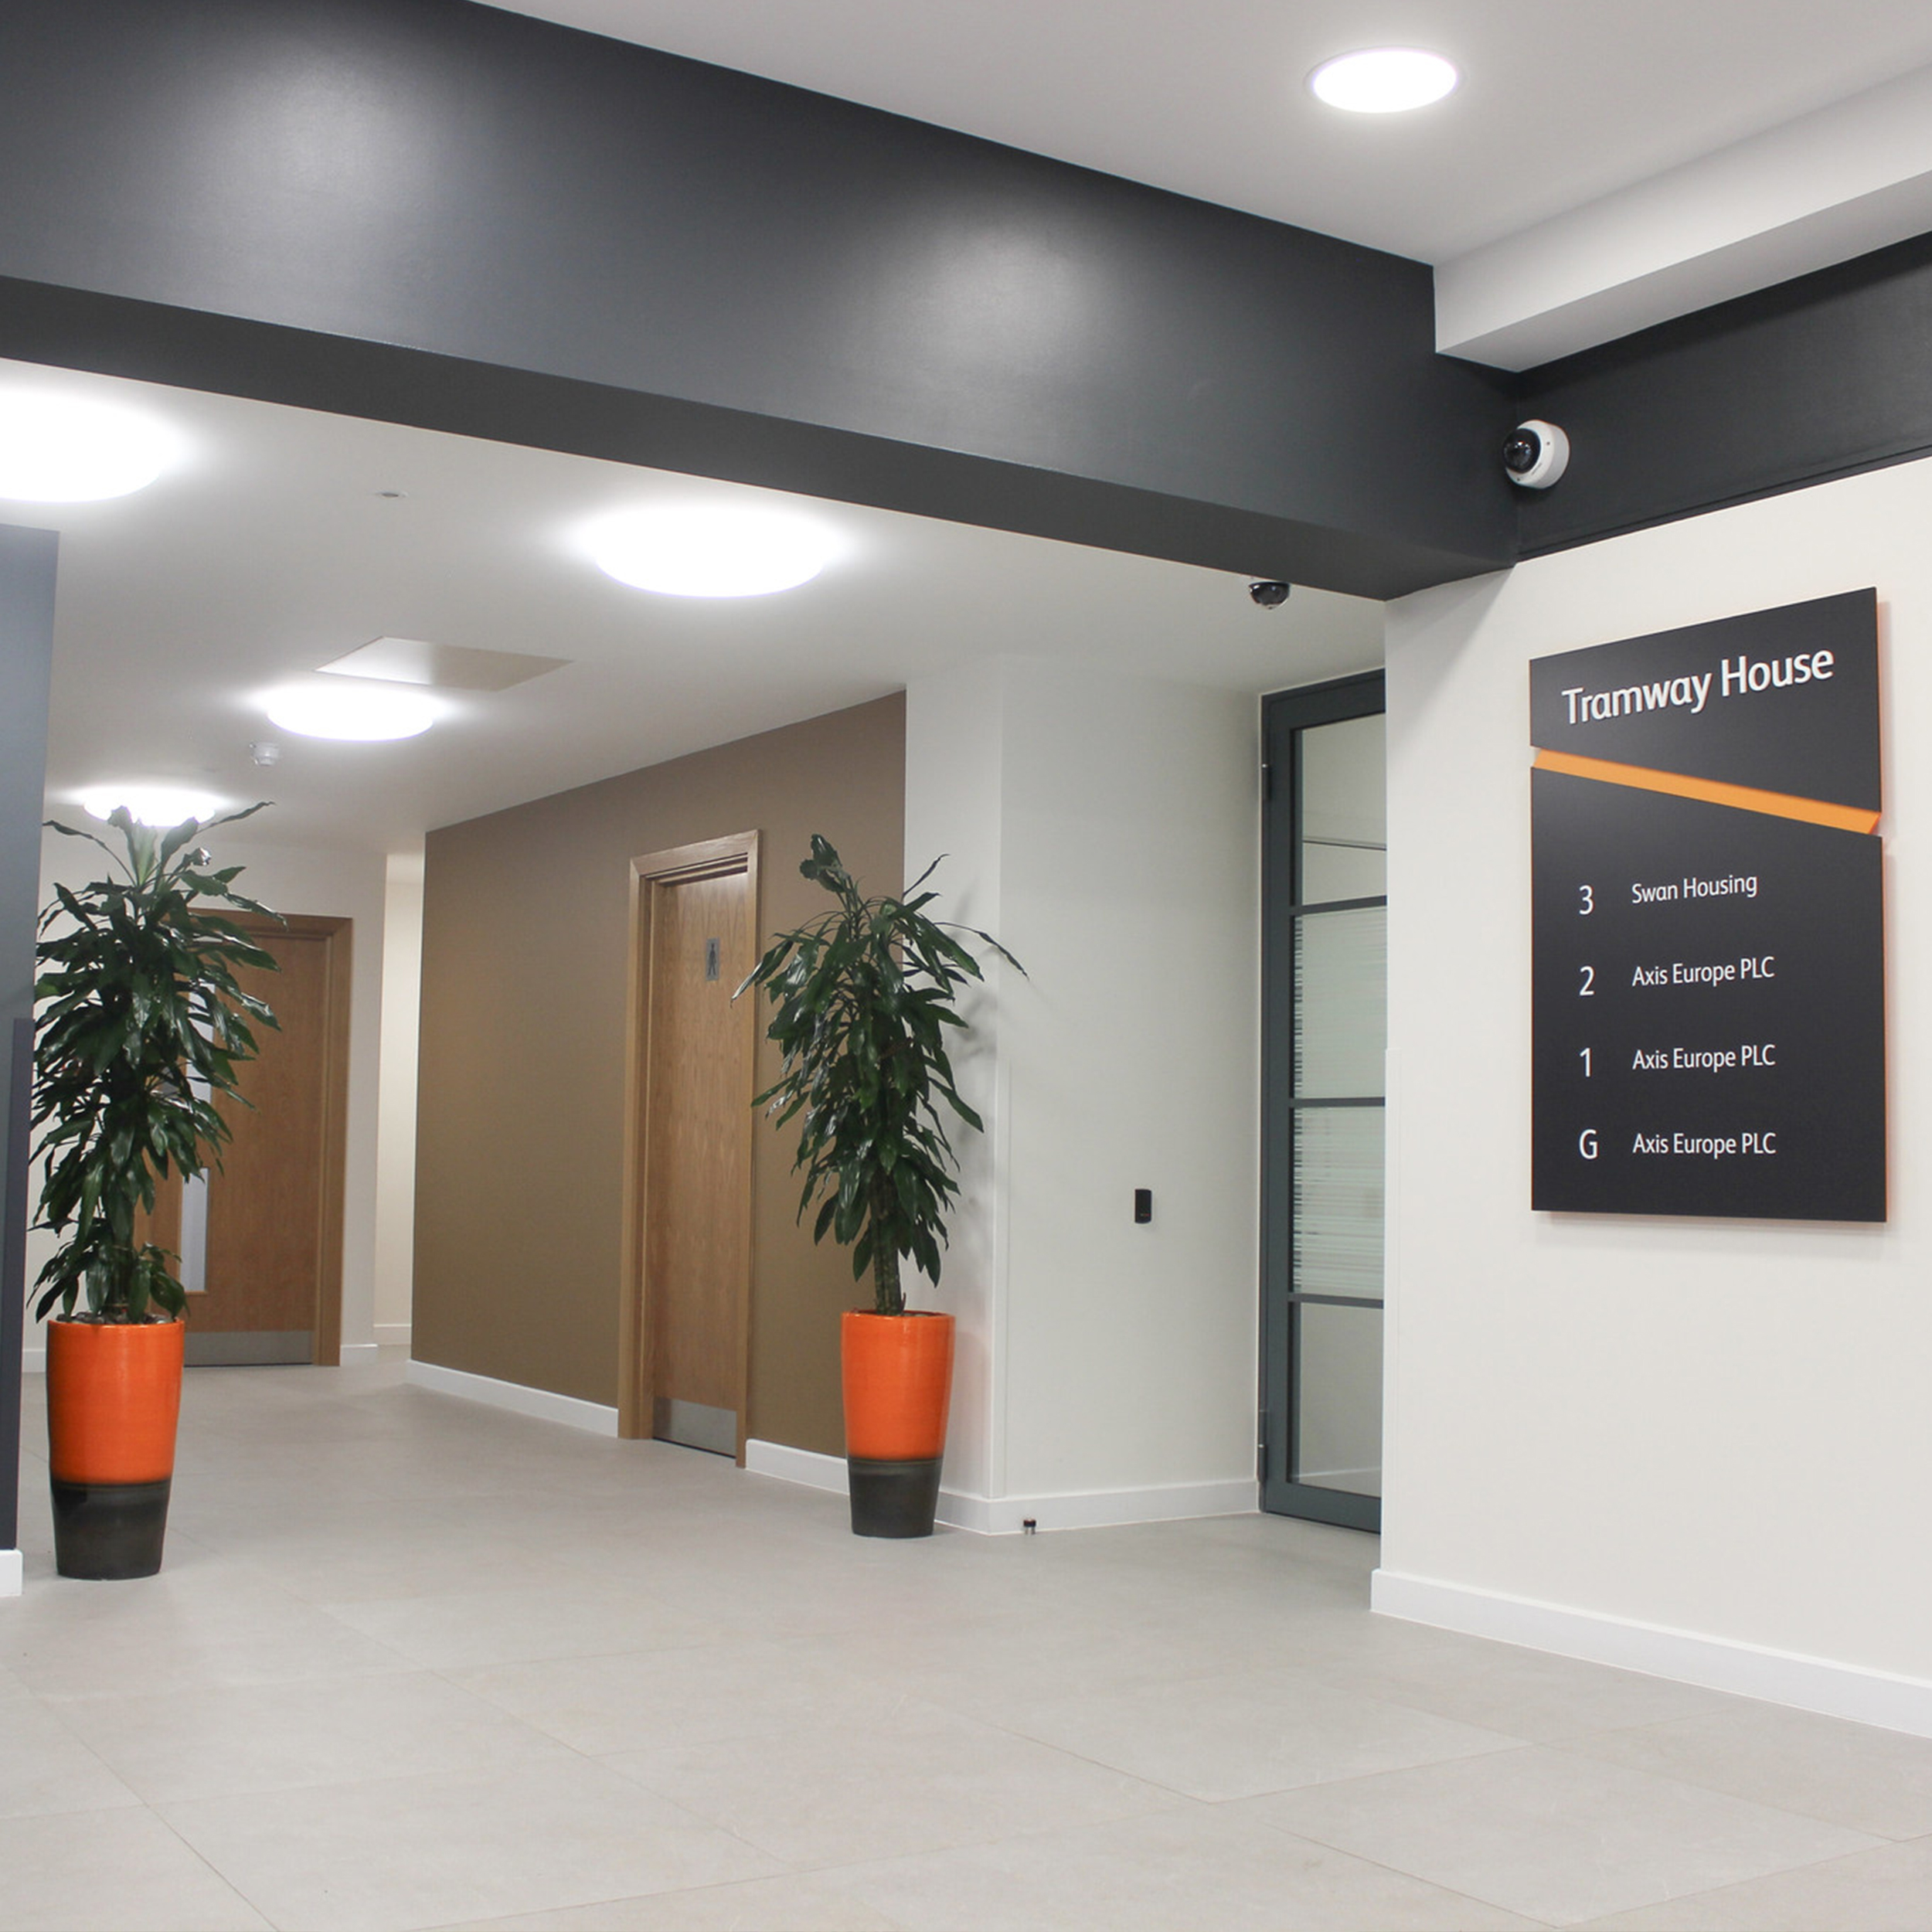 lobby area of a corporate office after refurbishment shows a plant, lifts, new tiles, painting and other renovations